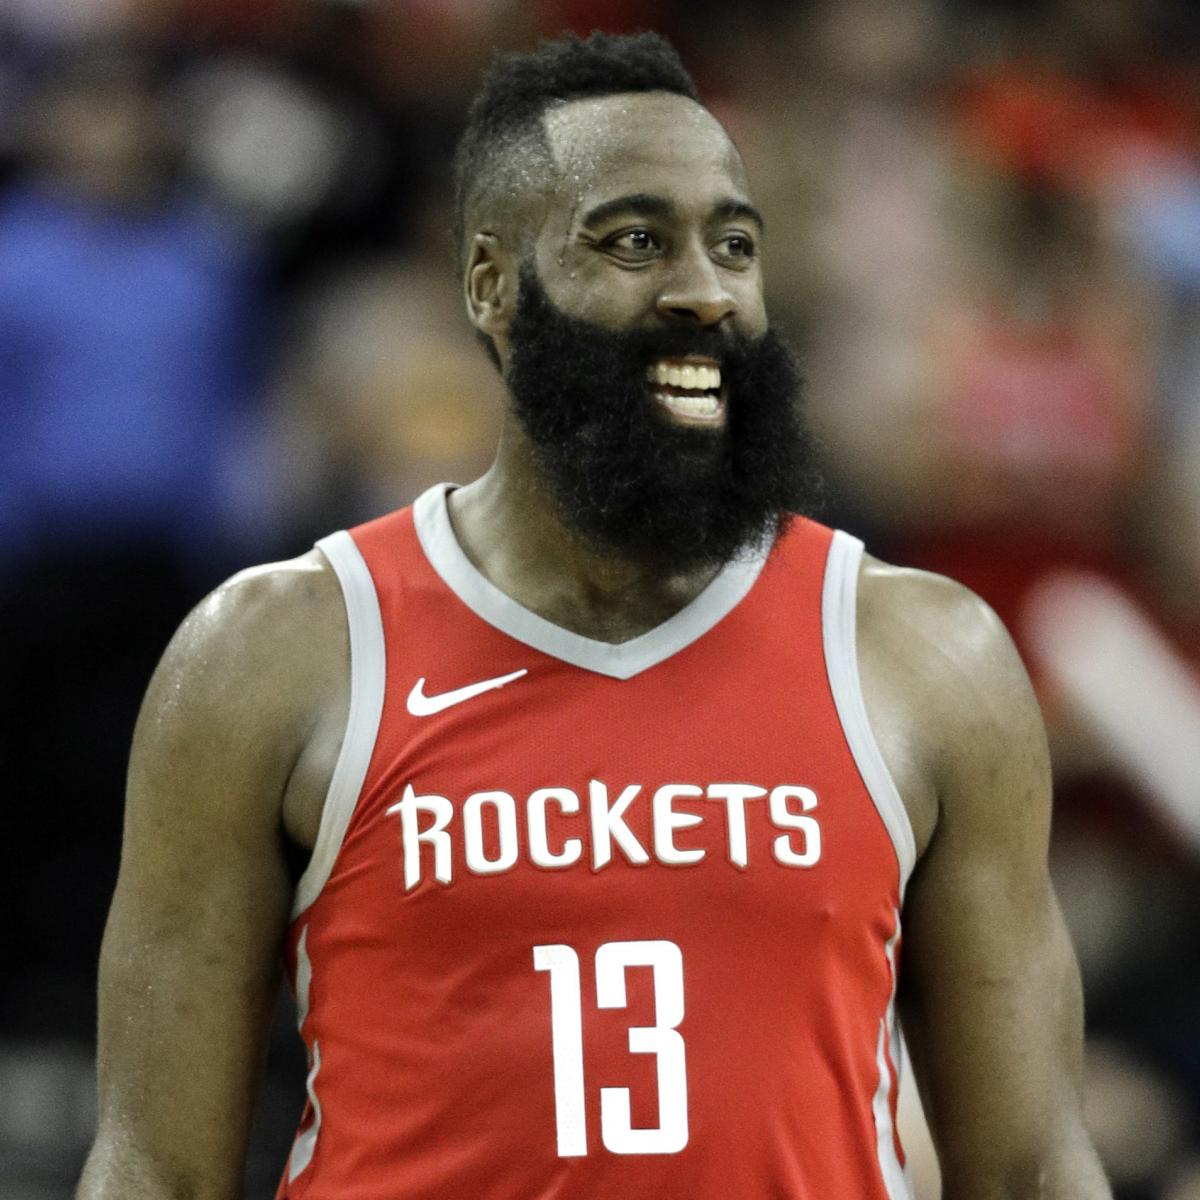 Nba2k19 James Harden: 2018 NBA MVP Voting Results: James Harden Wins In A